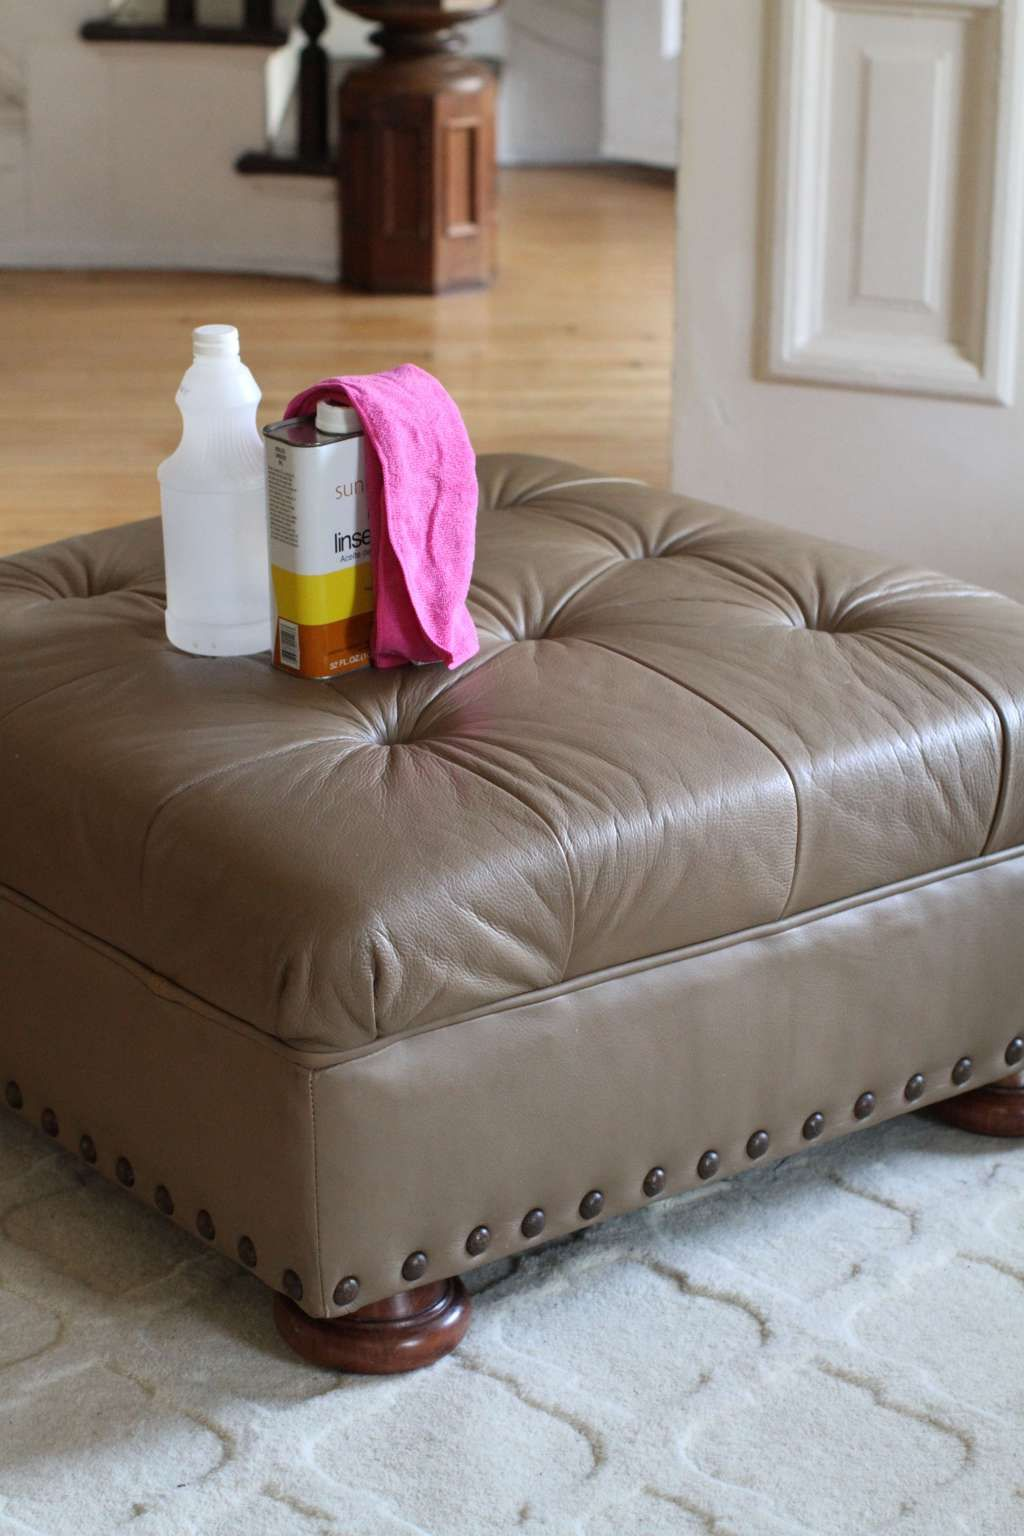 How To Condition Leather Furniture Leather Furniture Conditioner